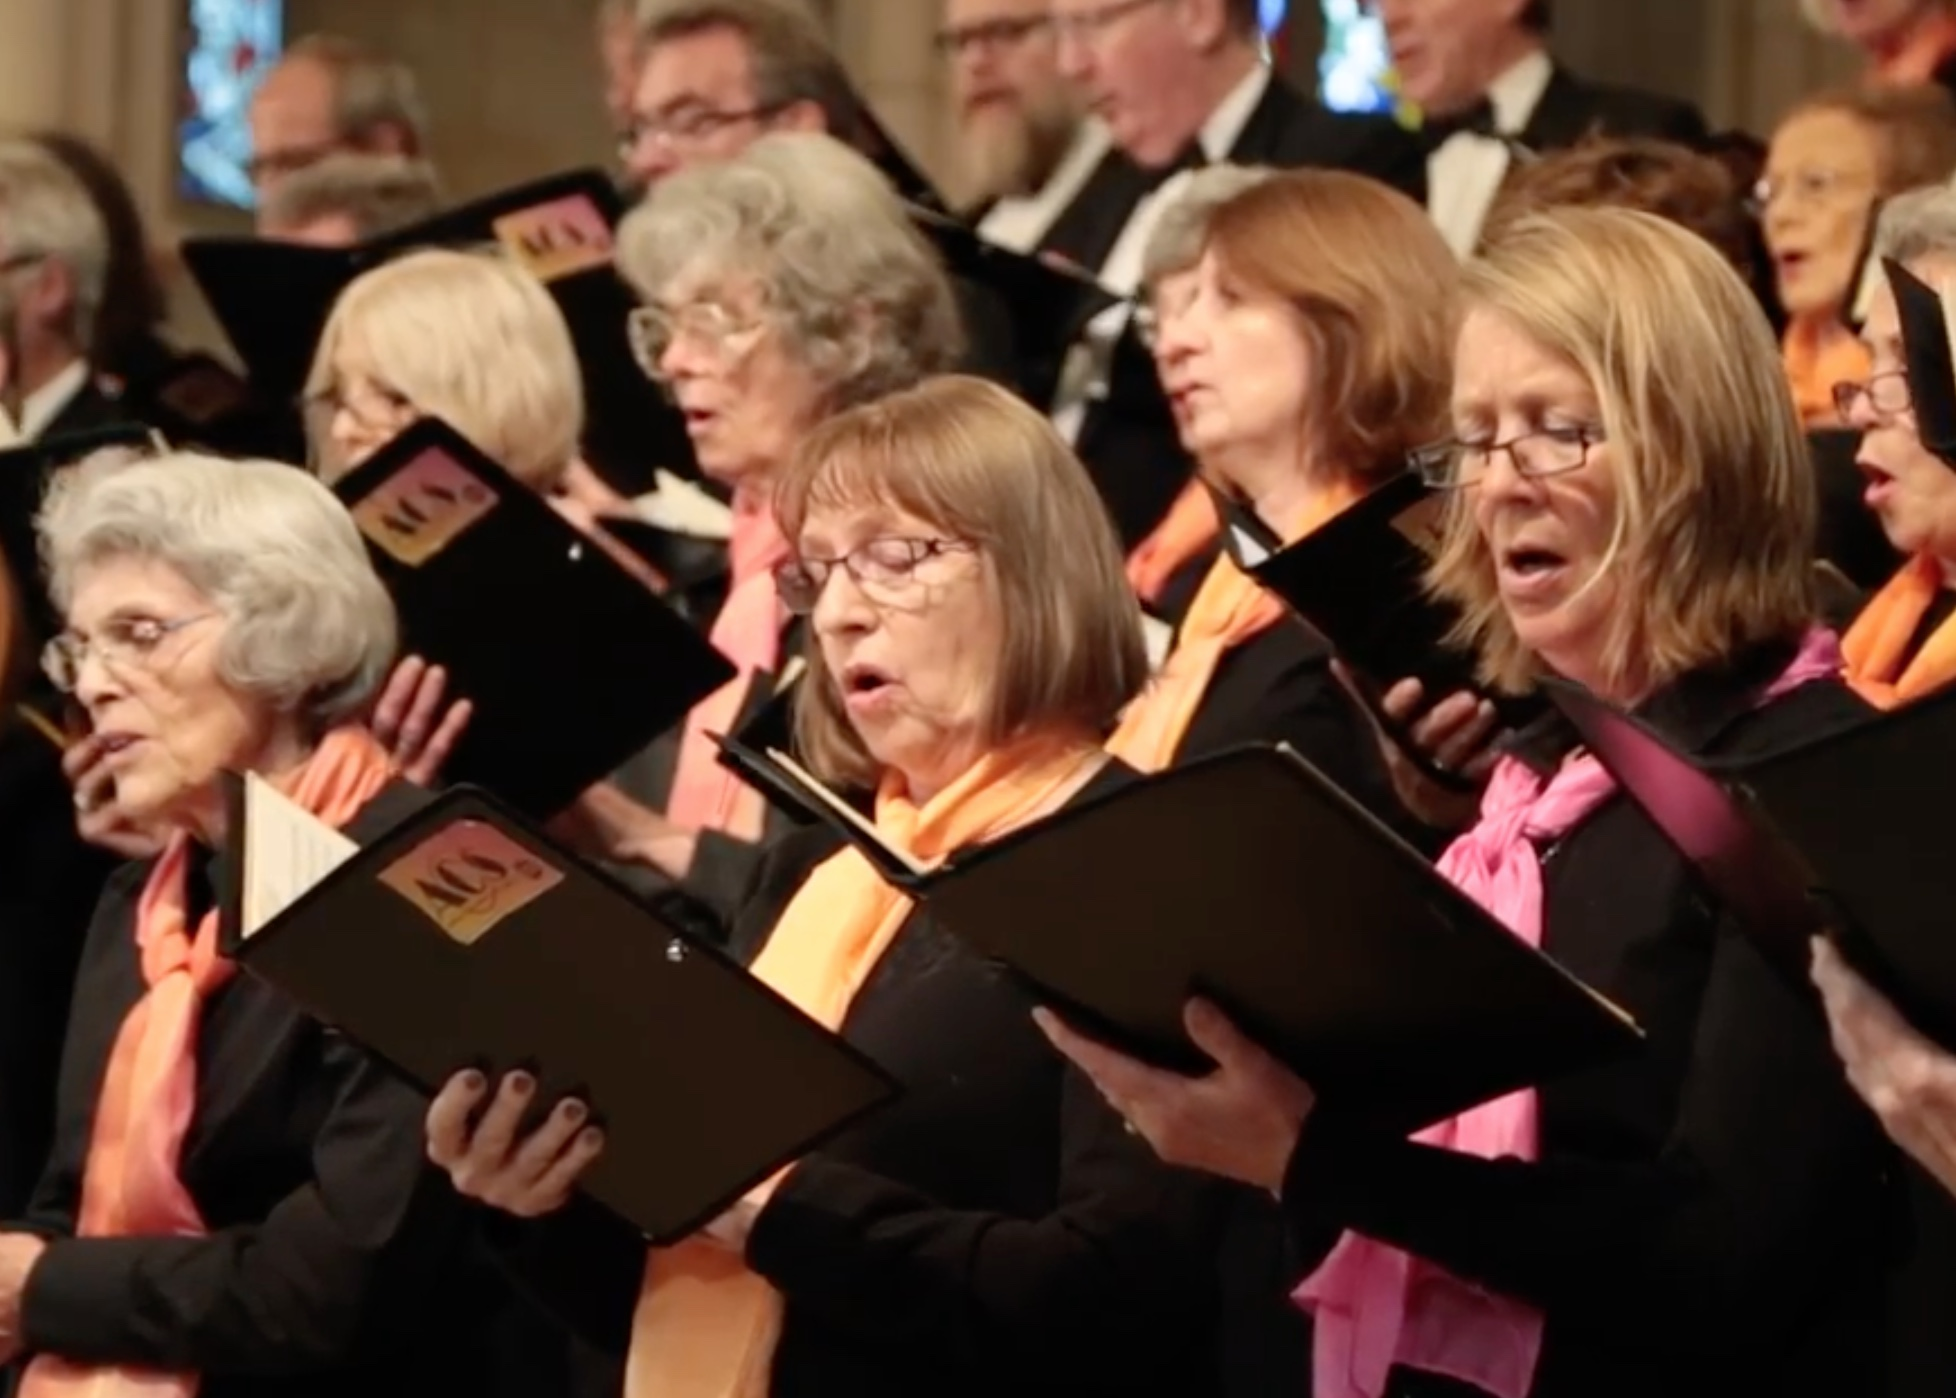 """""""This is a really special choral society with over 100 years of history. It's a very close knit group of friends and it's a very friendly and warm atmosphere."""" - Joe Paxton, musical director"""